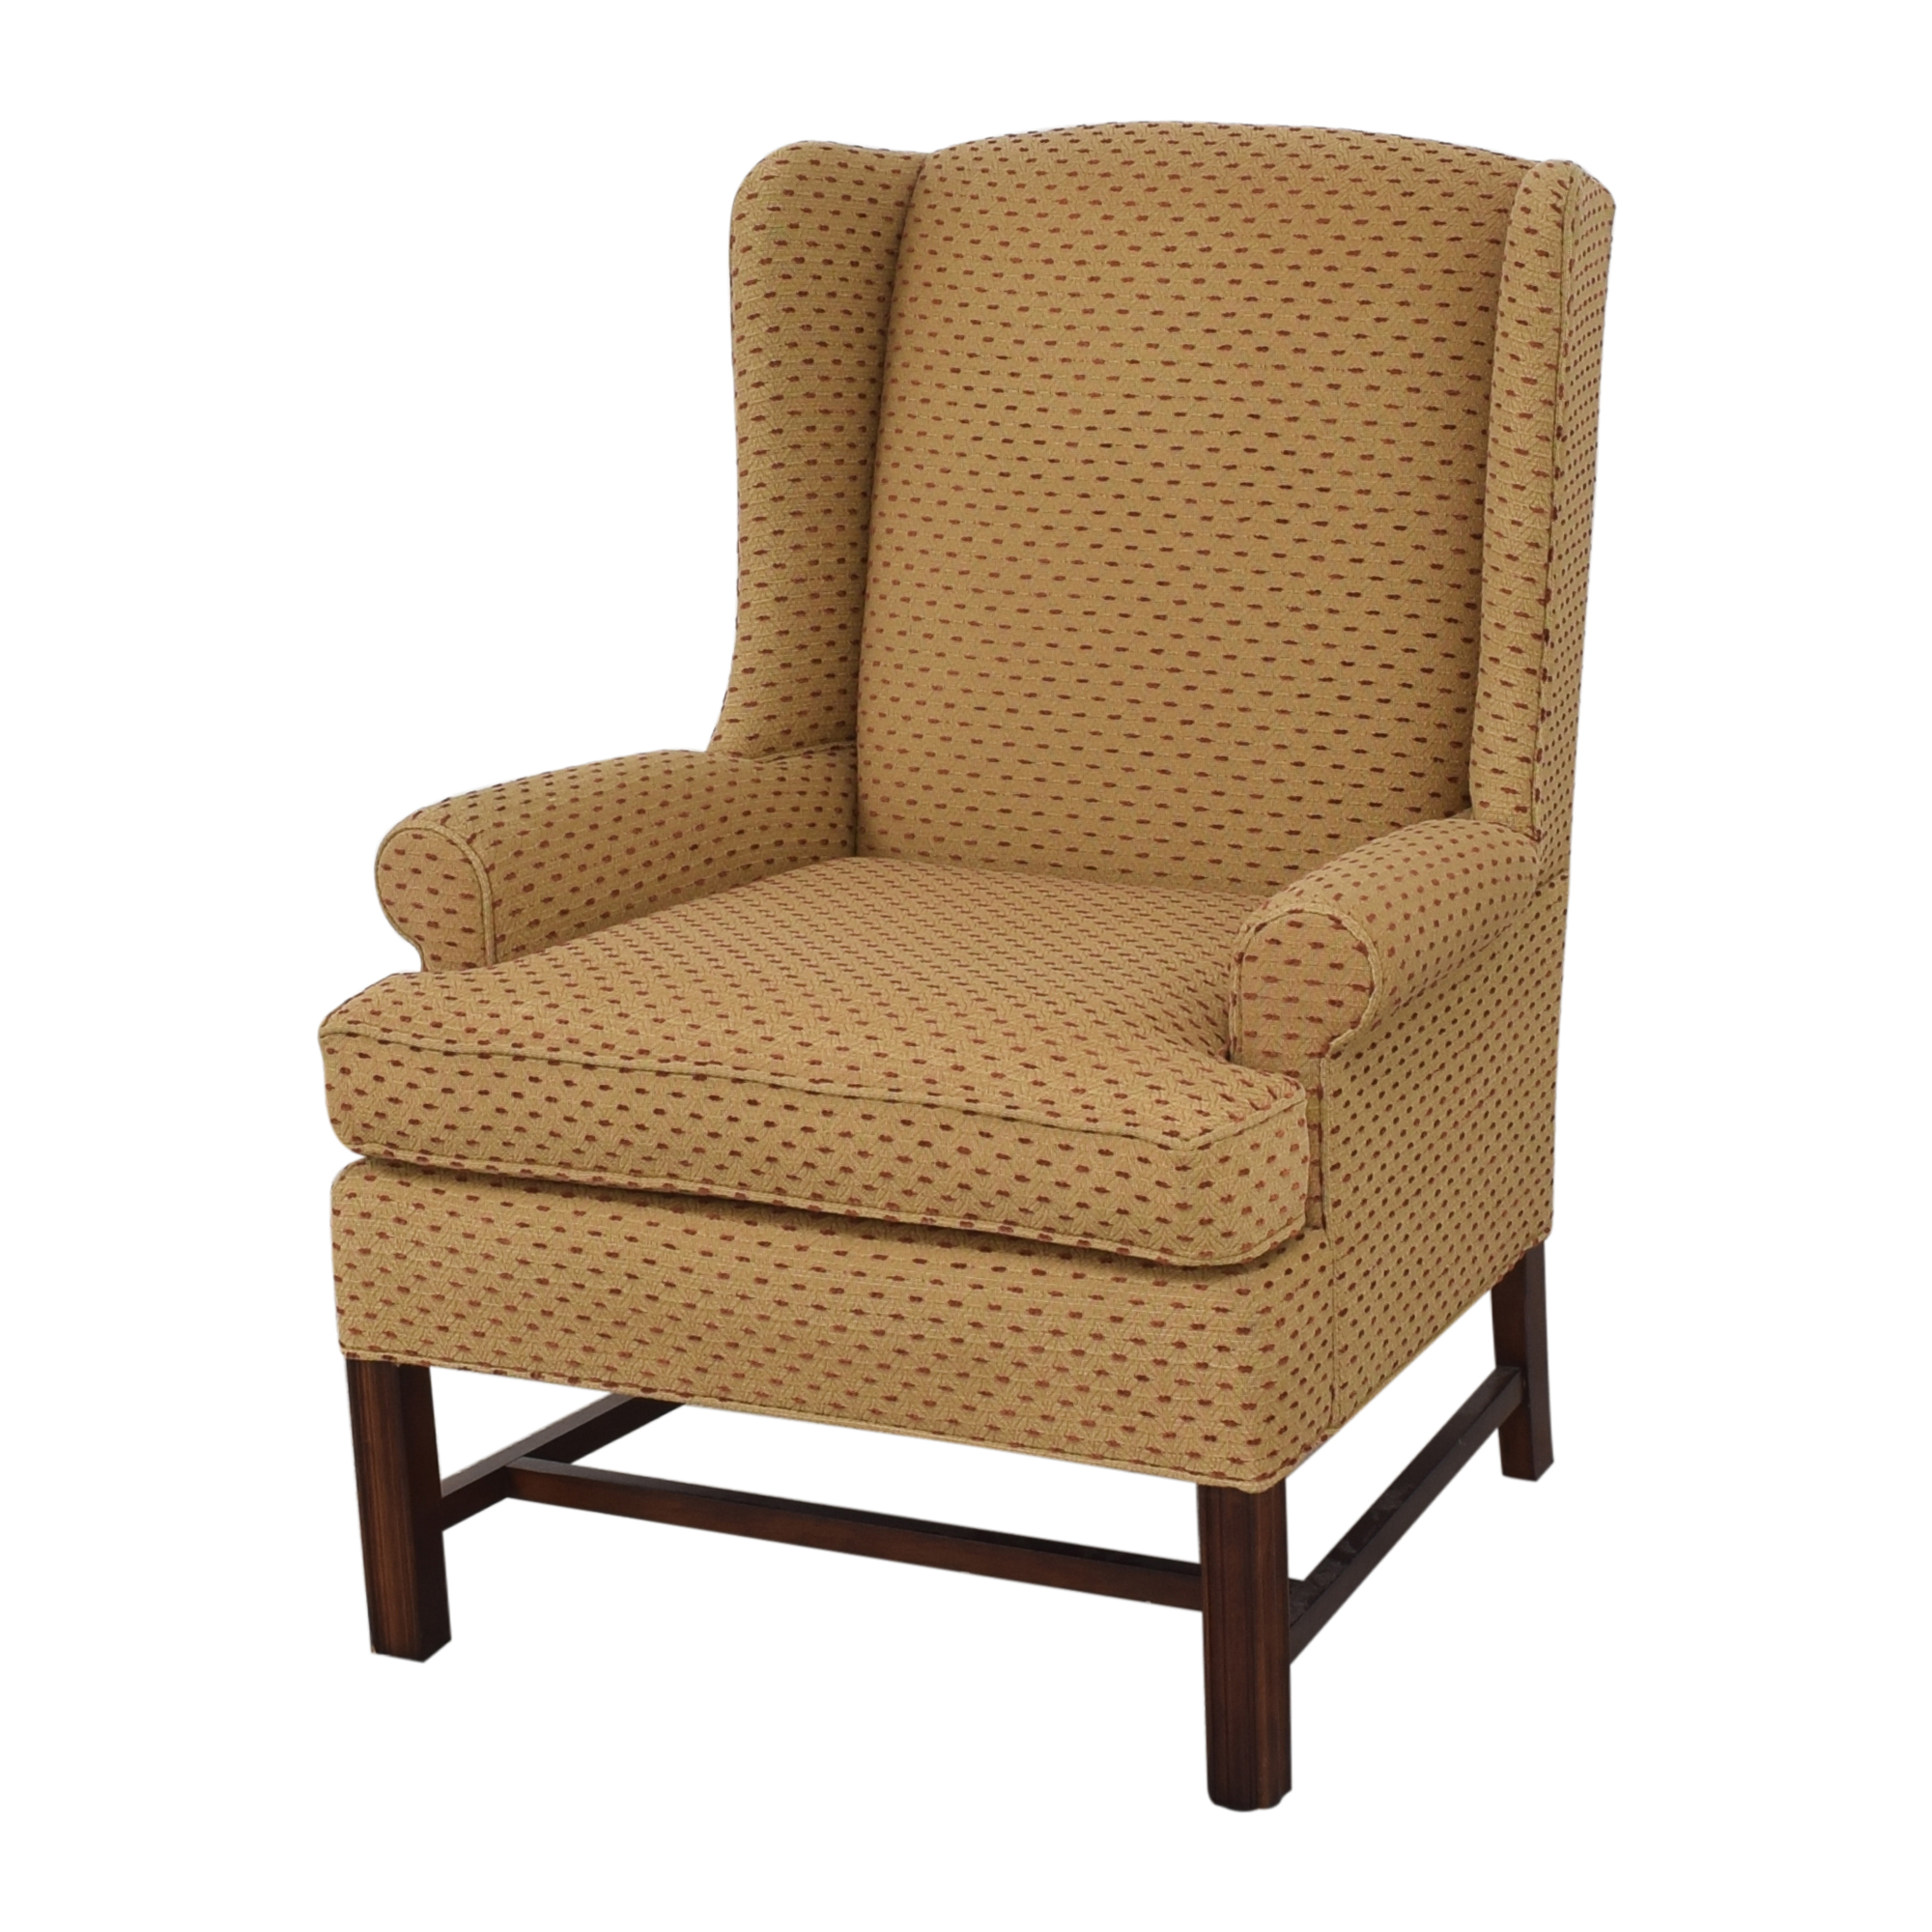 Thomasville Thomasville Accent Chair with Ottoman nyc